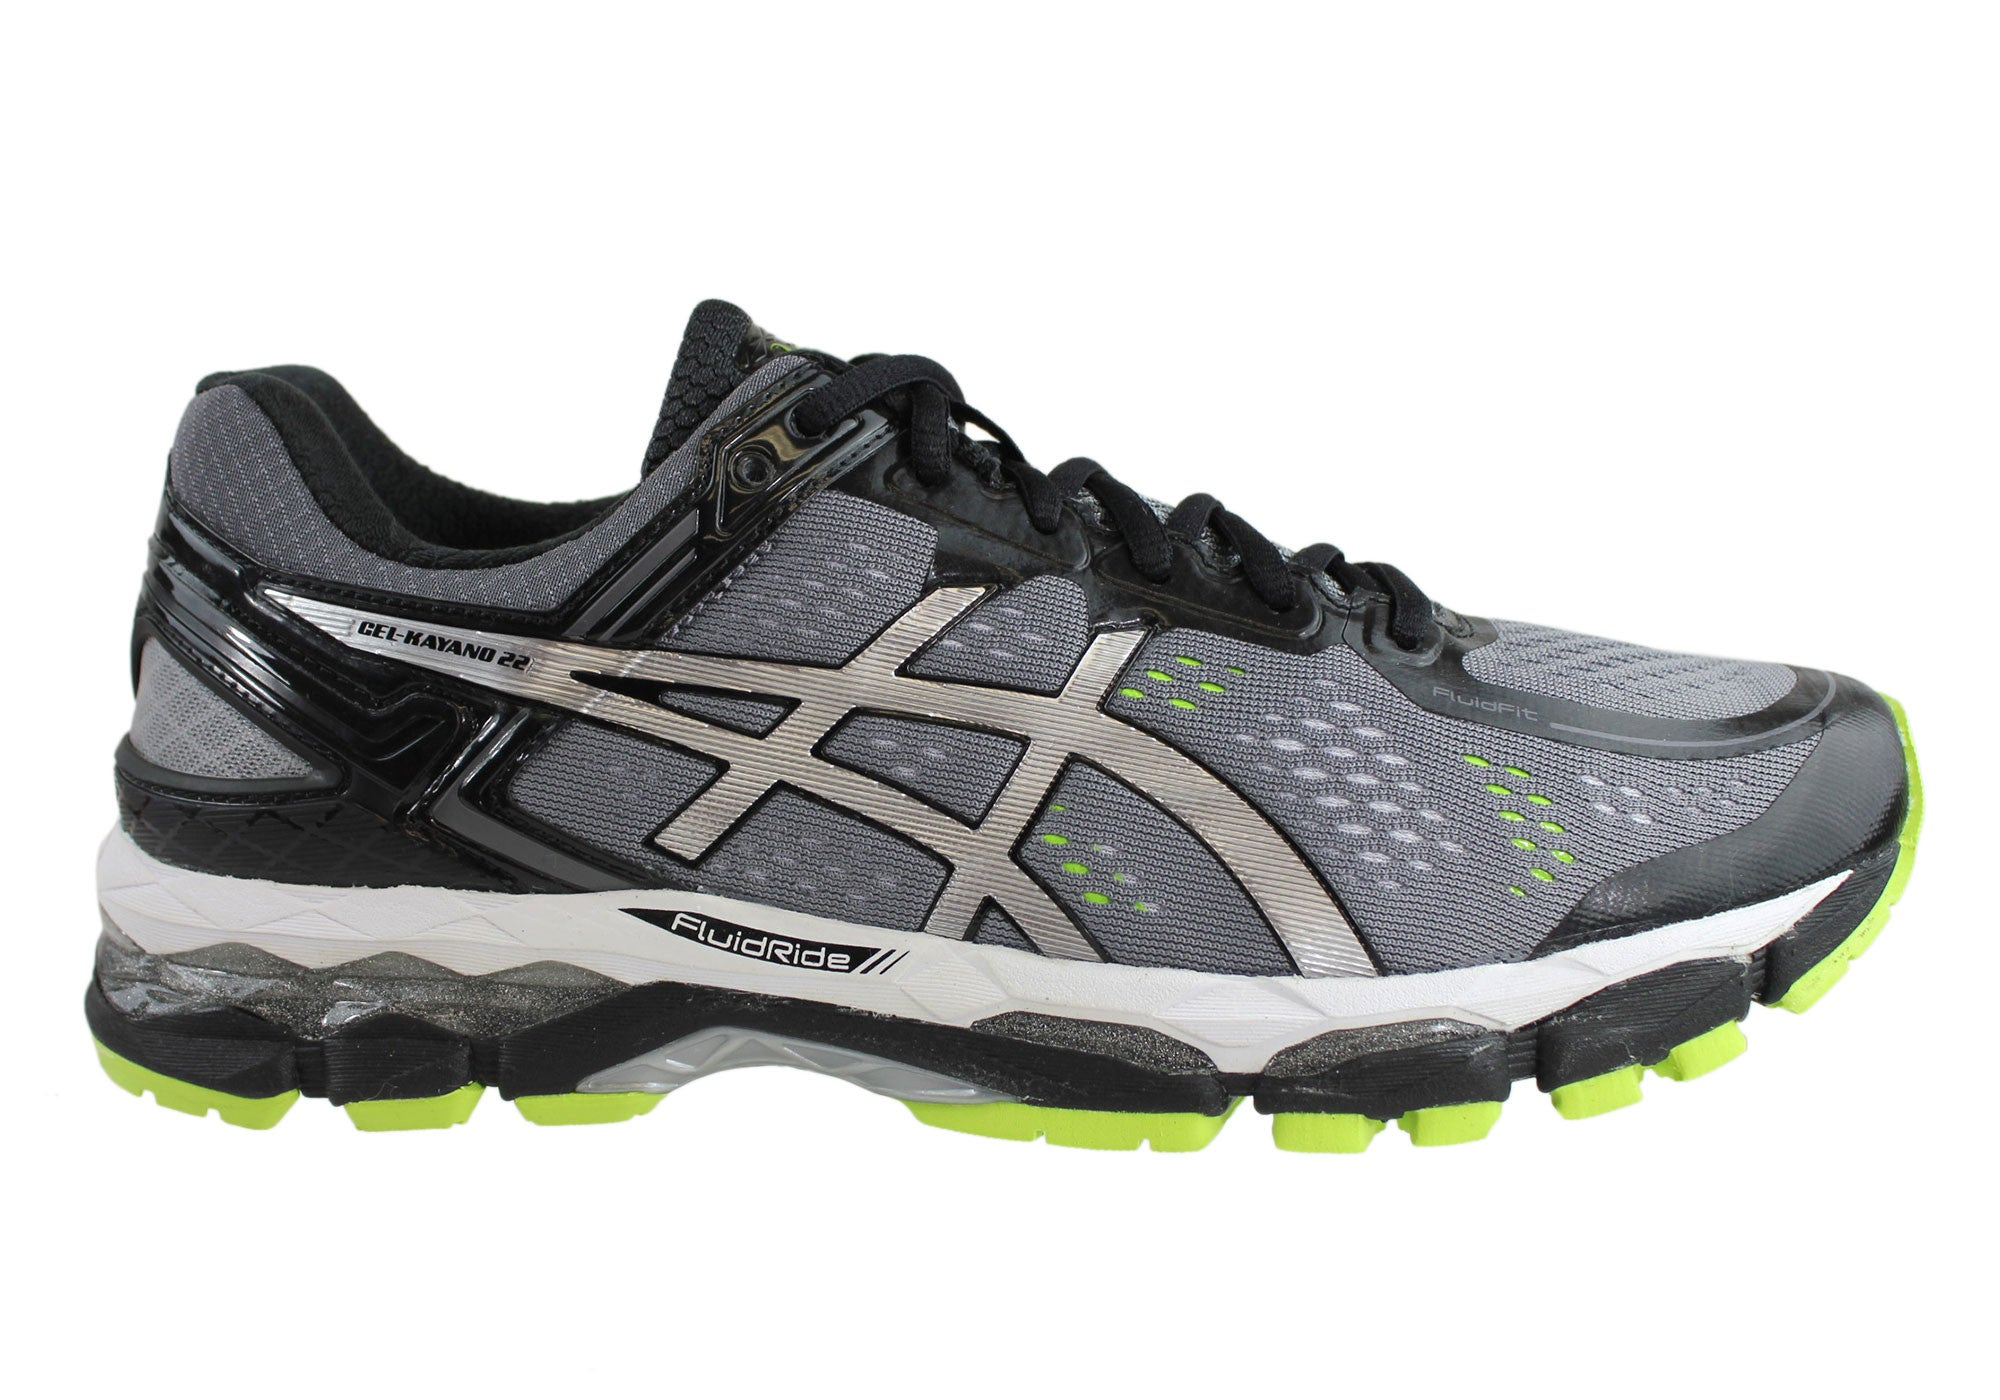 asics gel kayano 22 mens 4e extra wide width premium cushioned running sport shoes